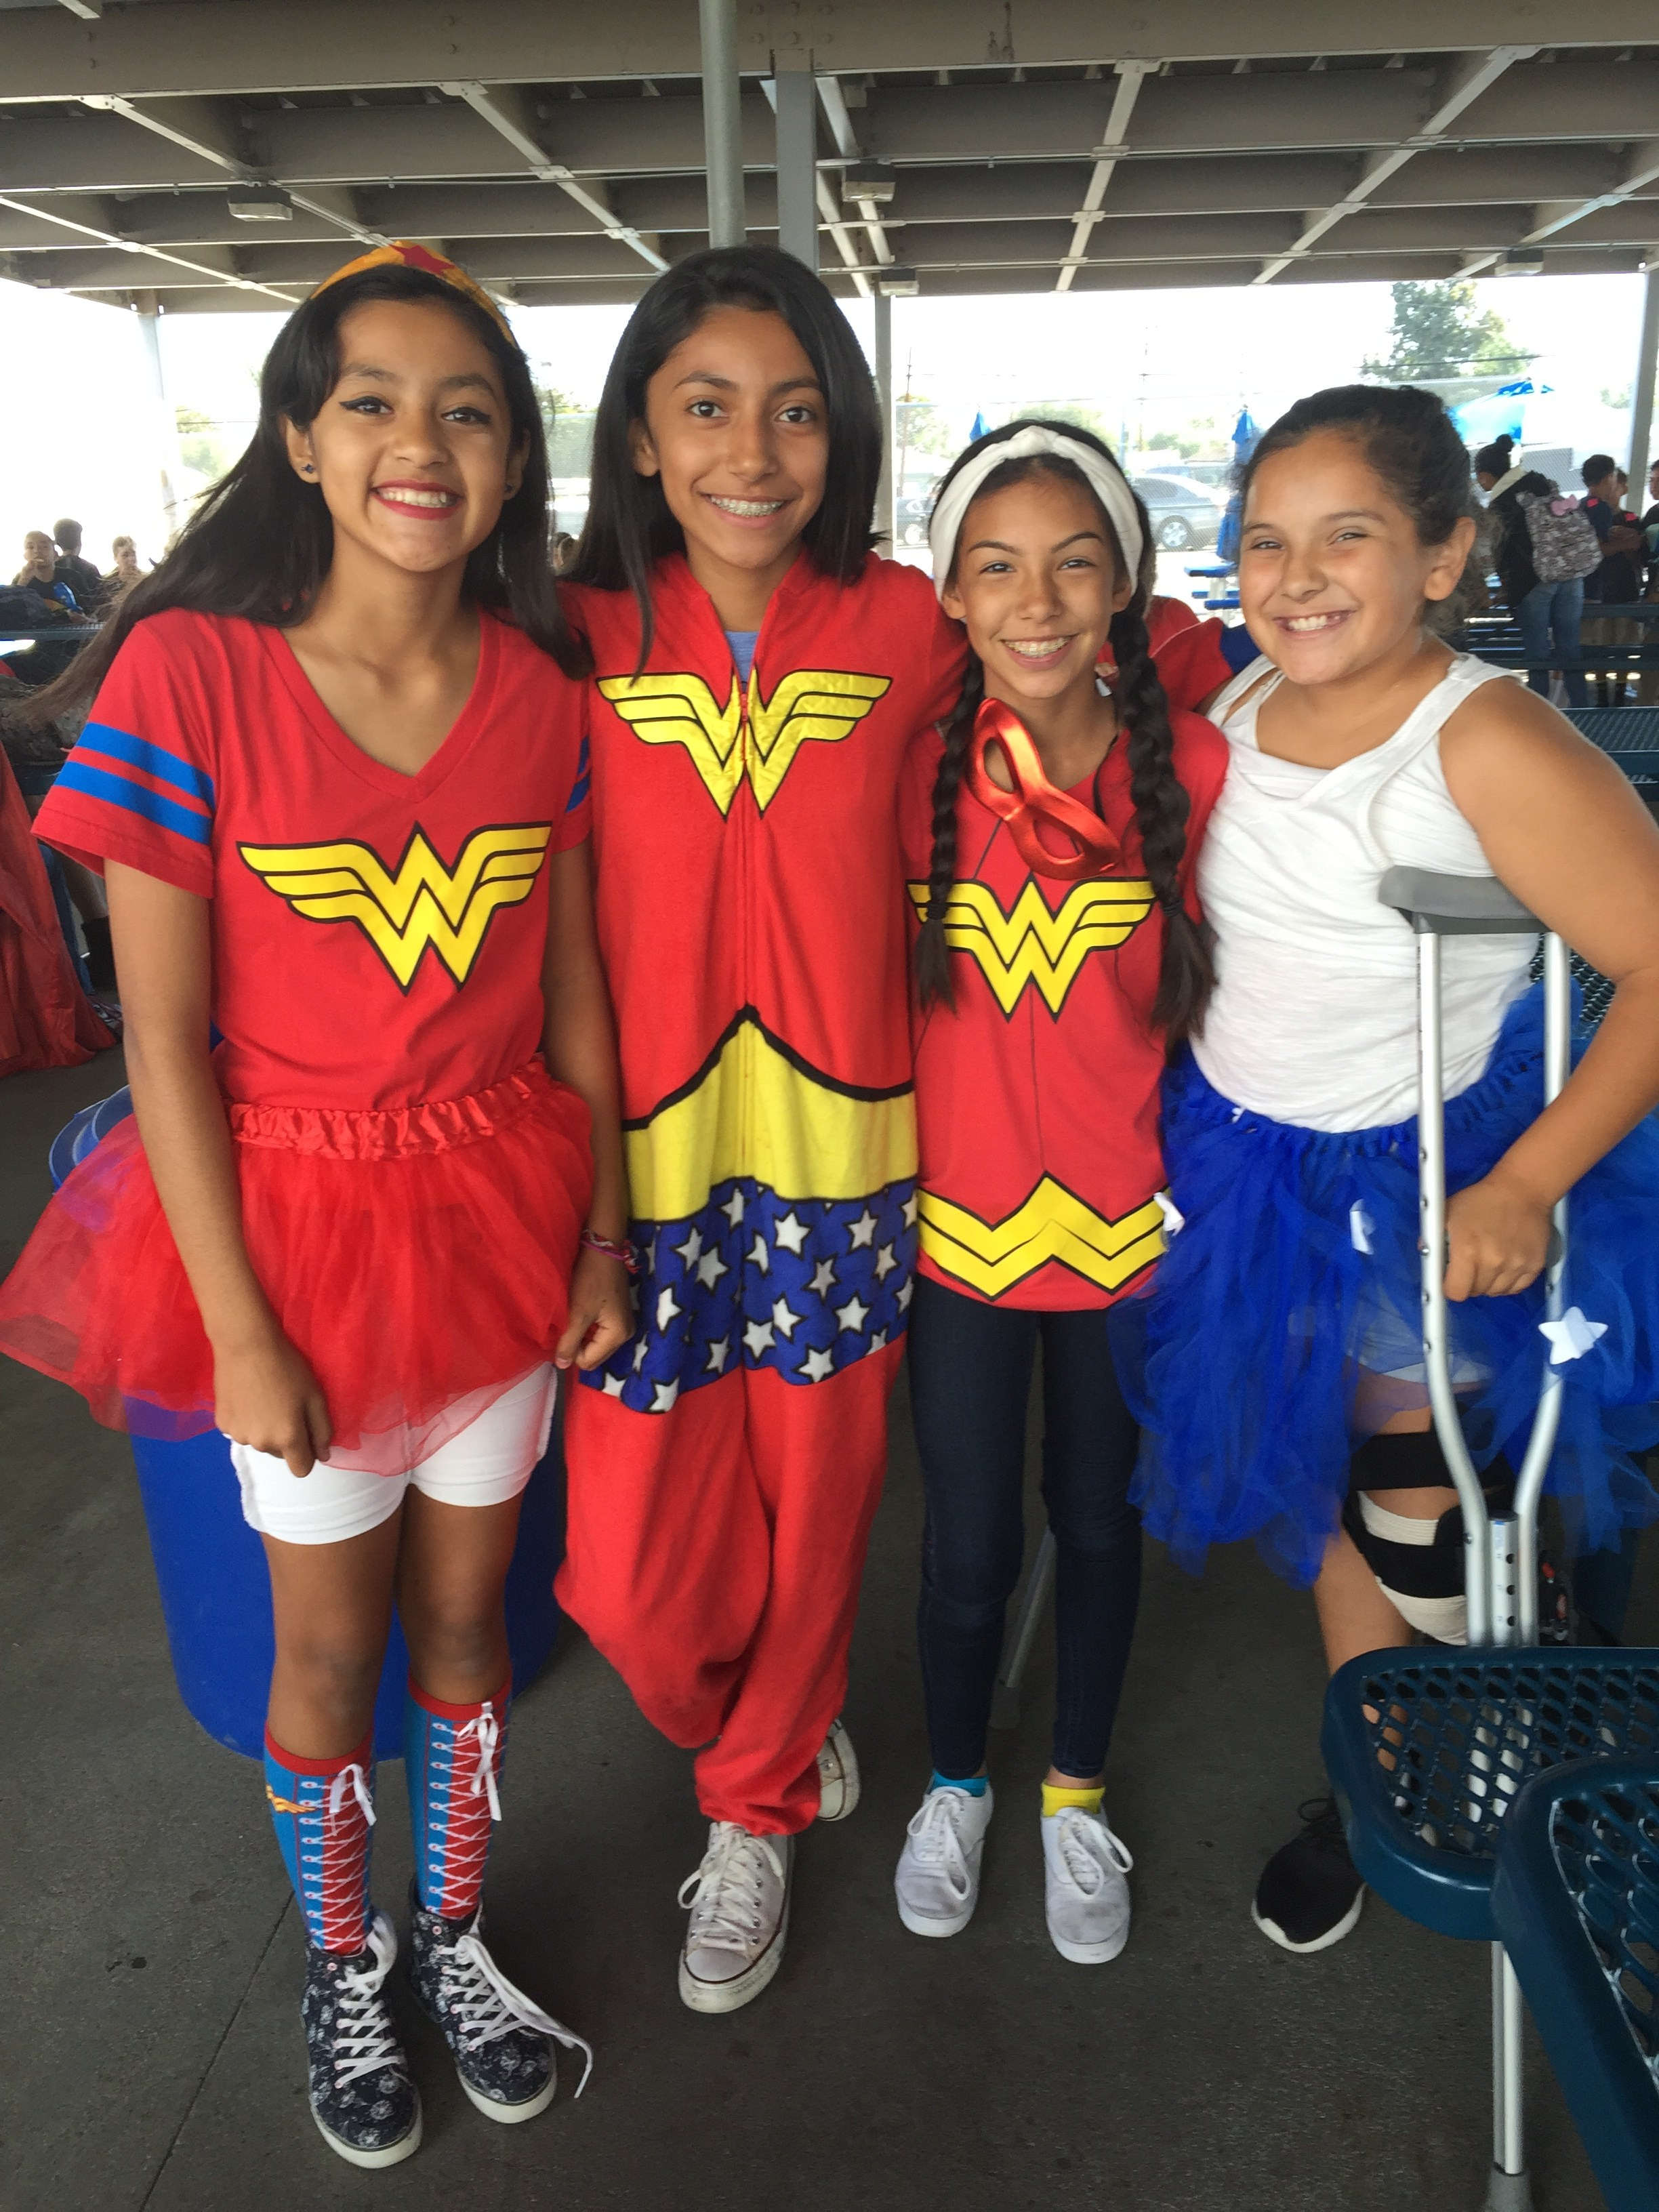 A group of female students dressed up as superheros